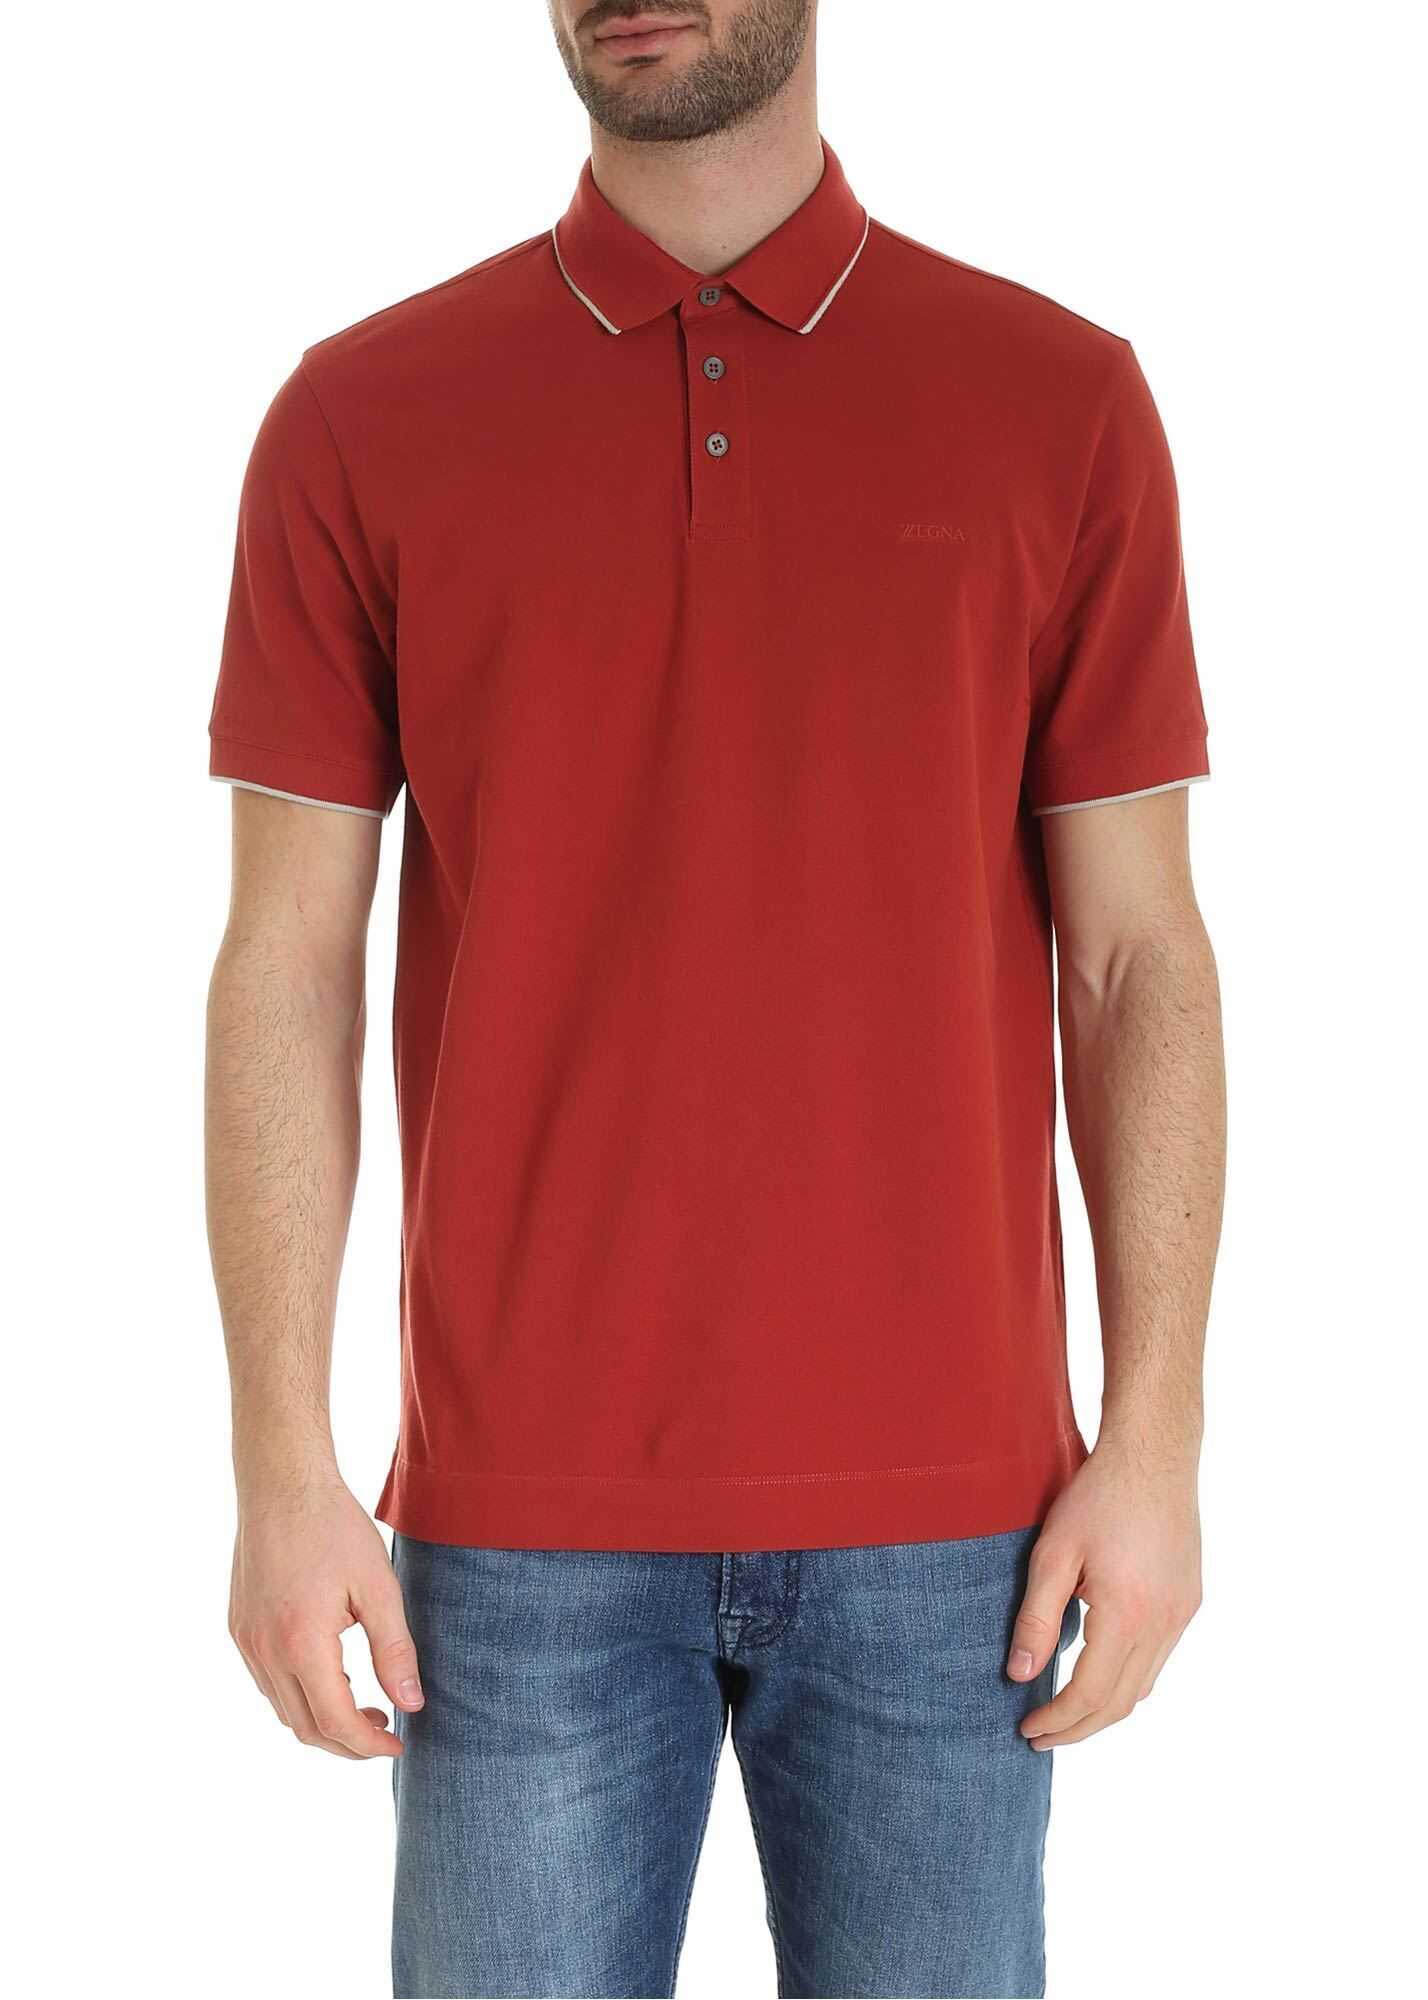 Z Zegna Tone-On-Tone Logo Polo Shirt In Brick Red Red imagine